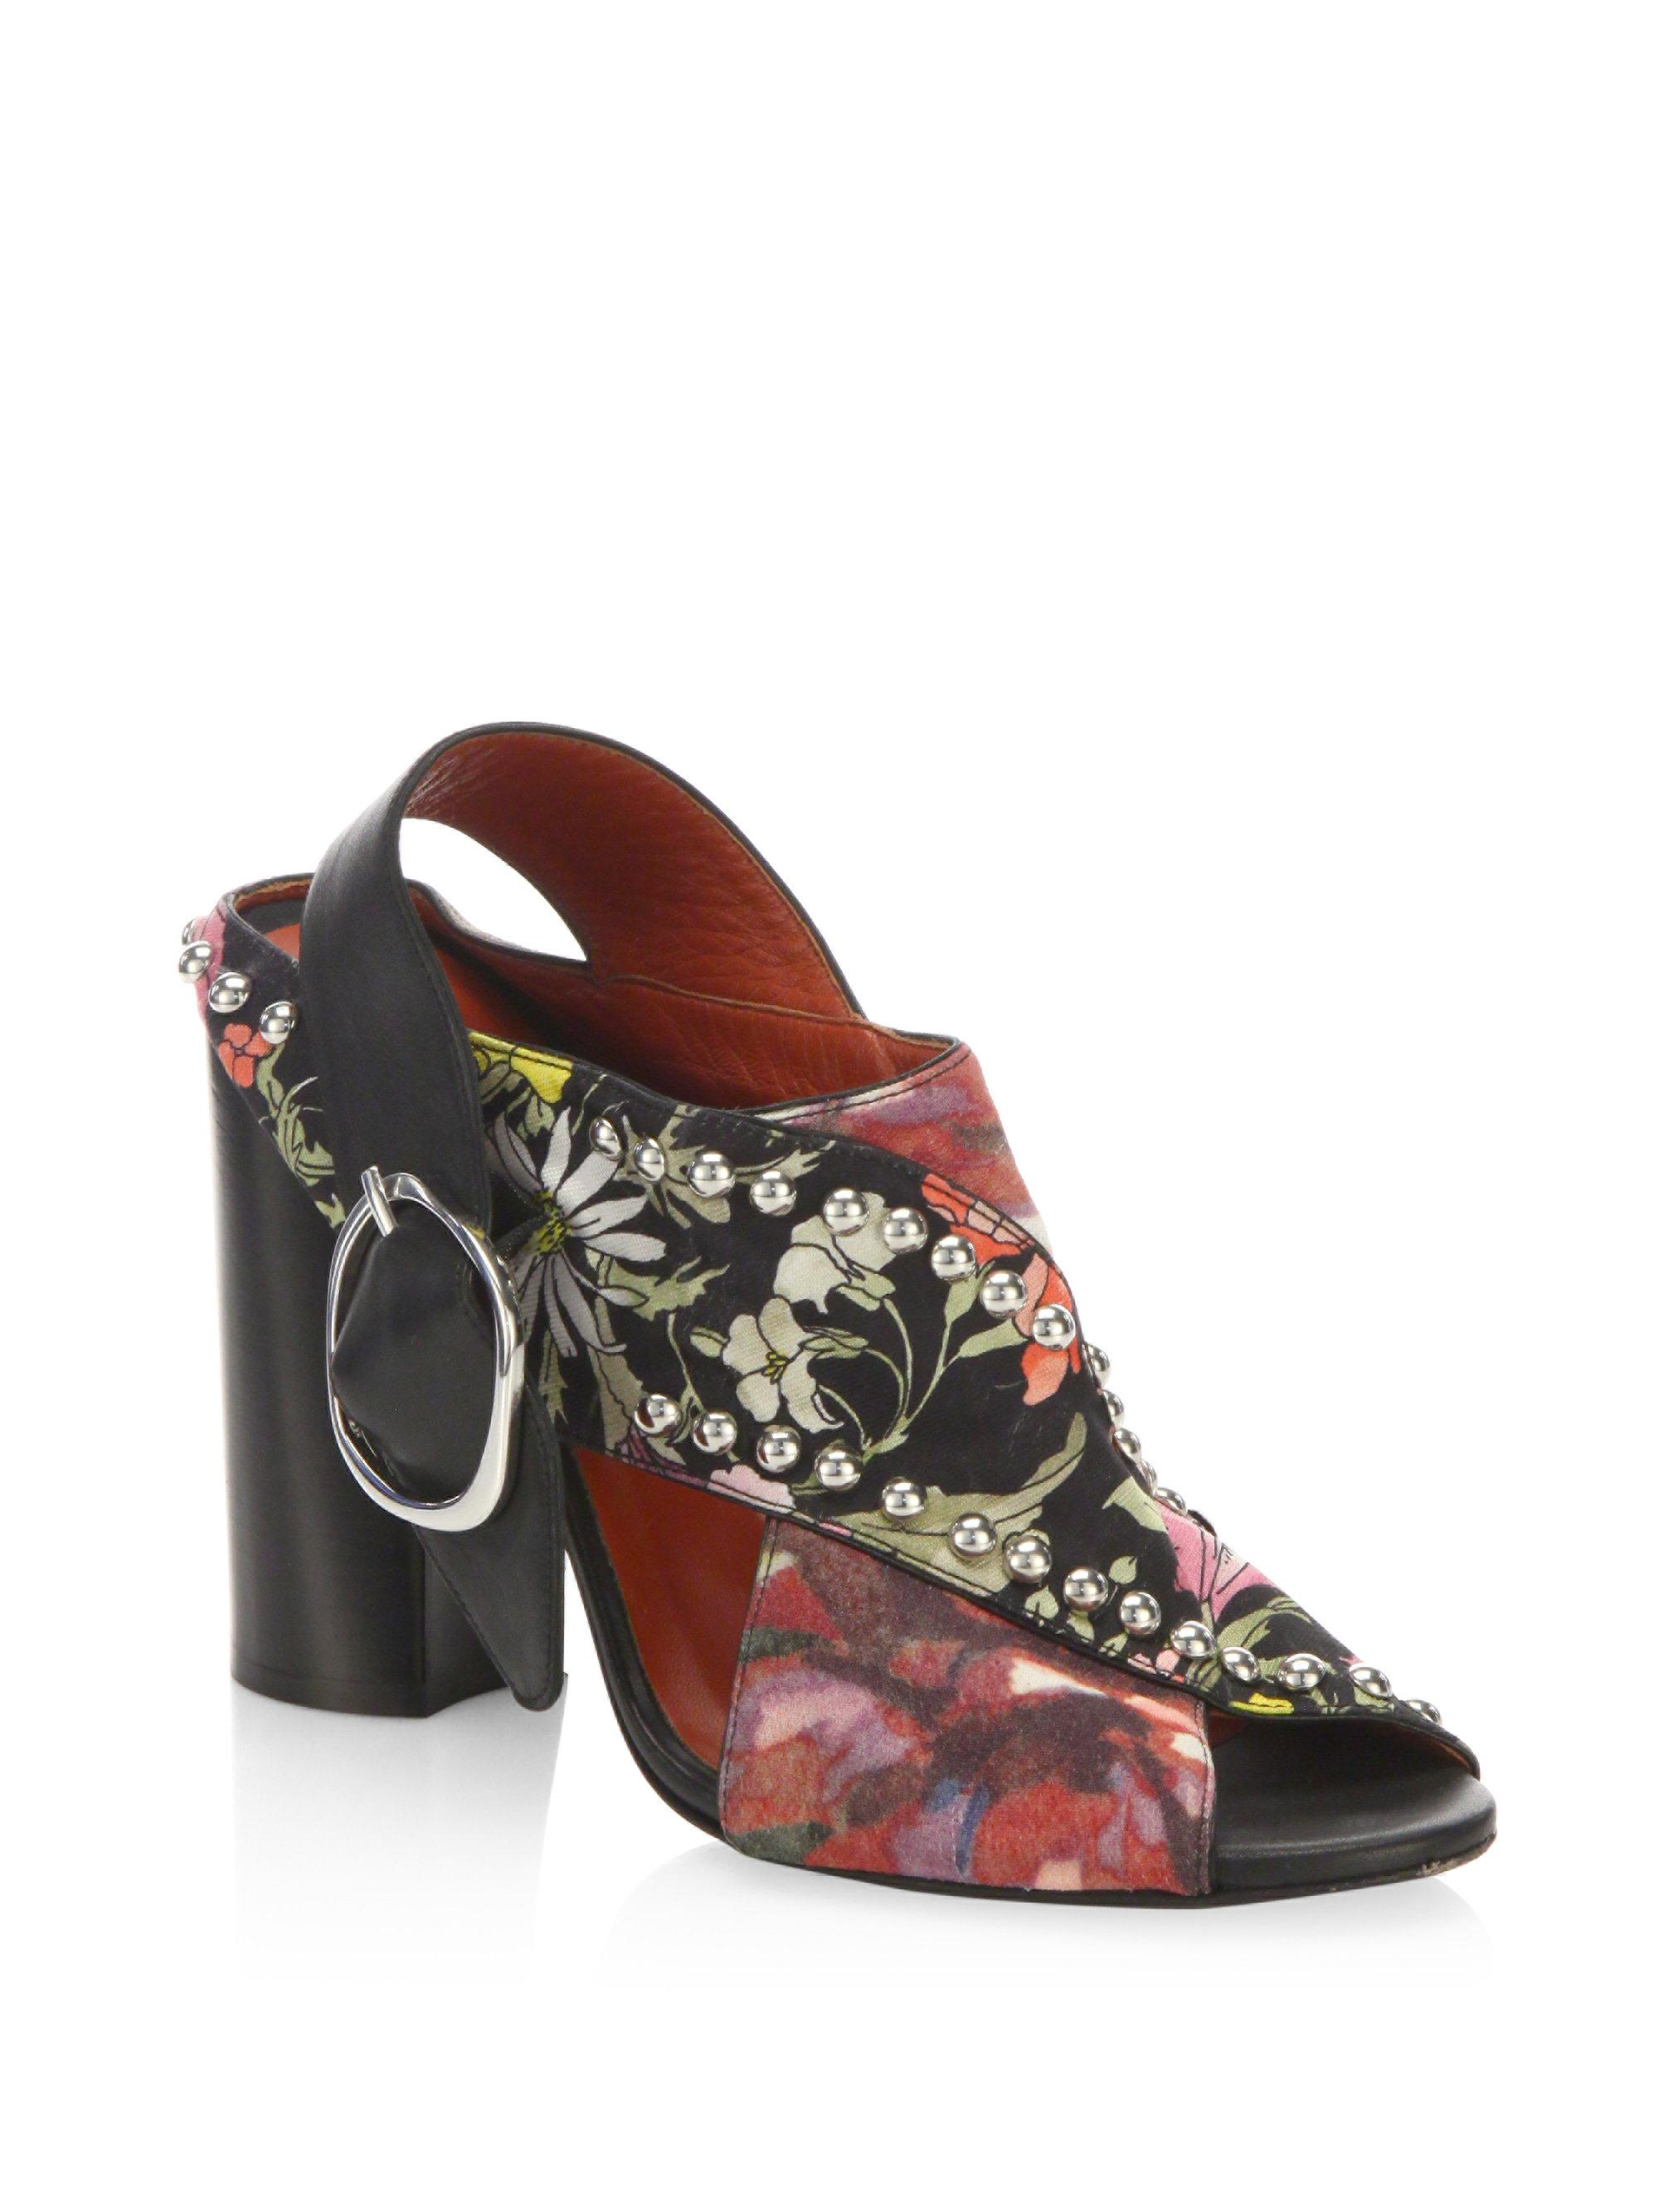 Womens Patsy Floral Slingback Sandals 3.1 Phillip Lim d1aNuqRB